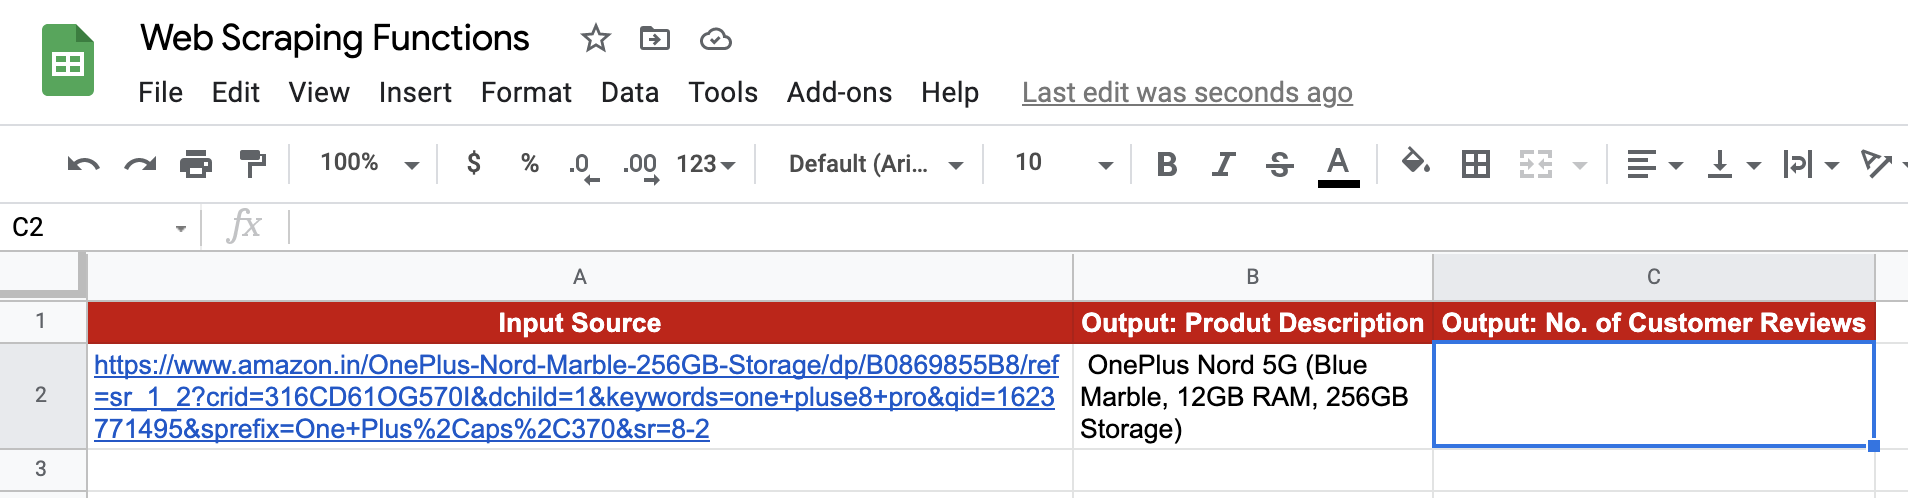 IMPORTXML function in Google Sheets